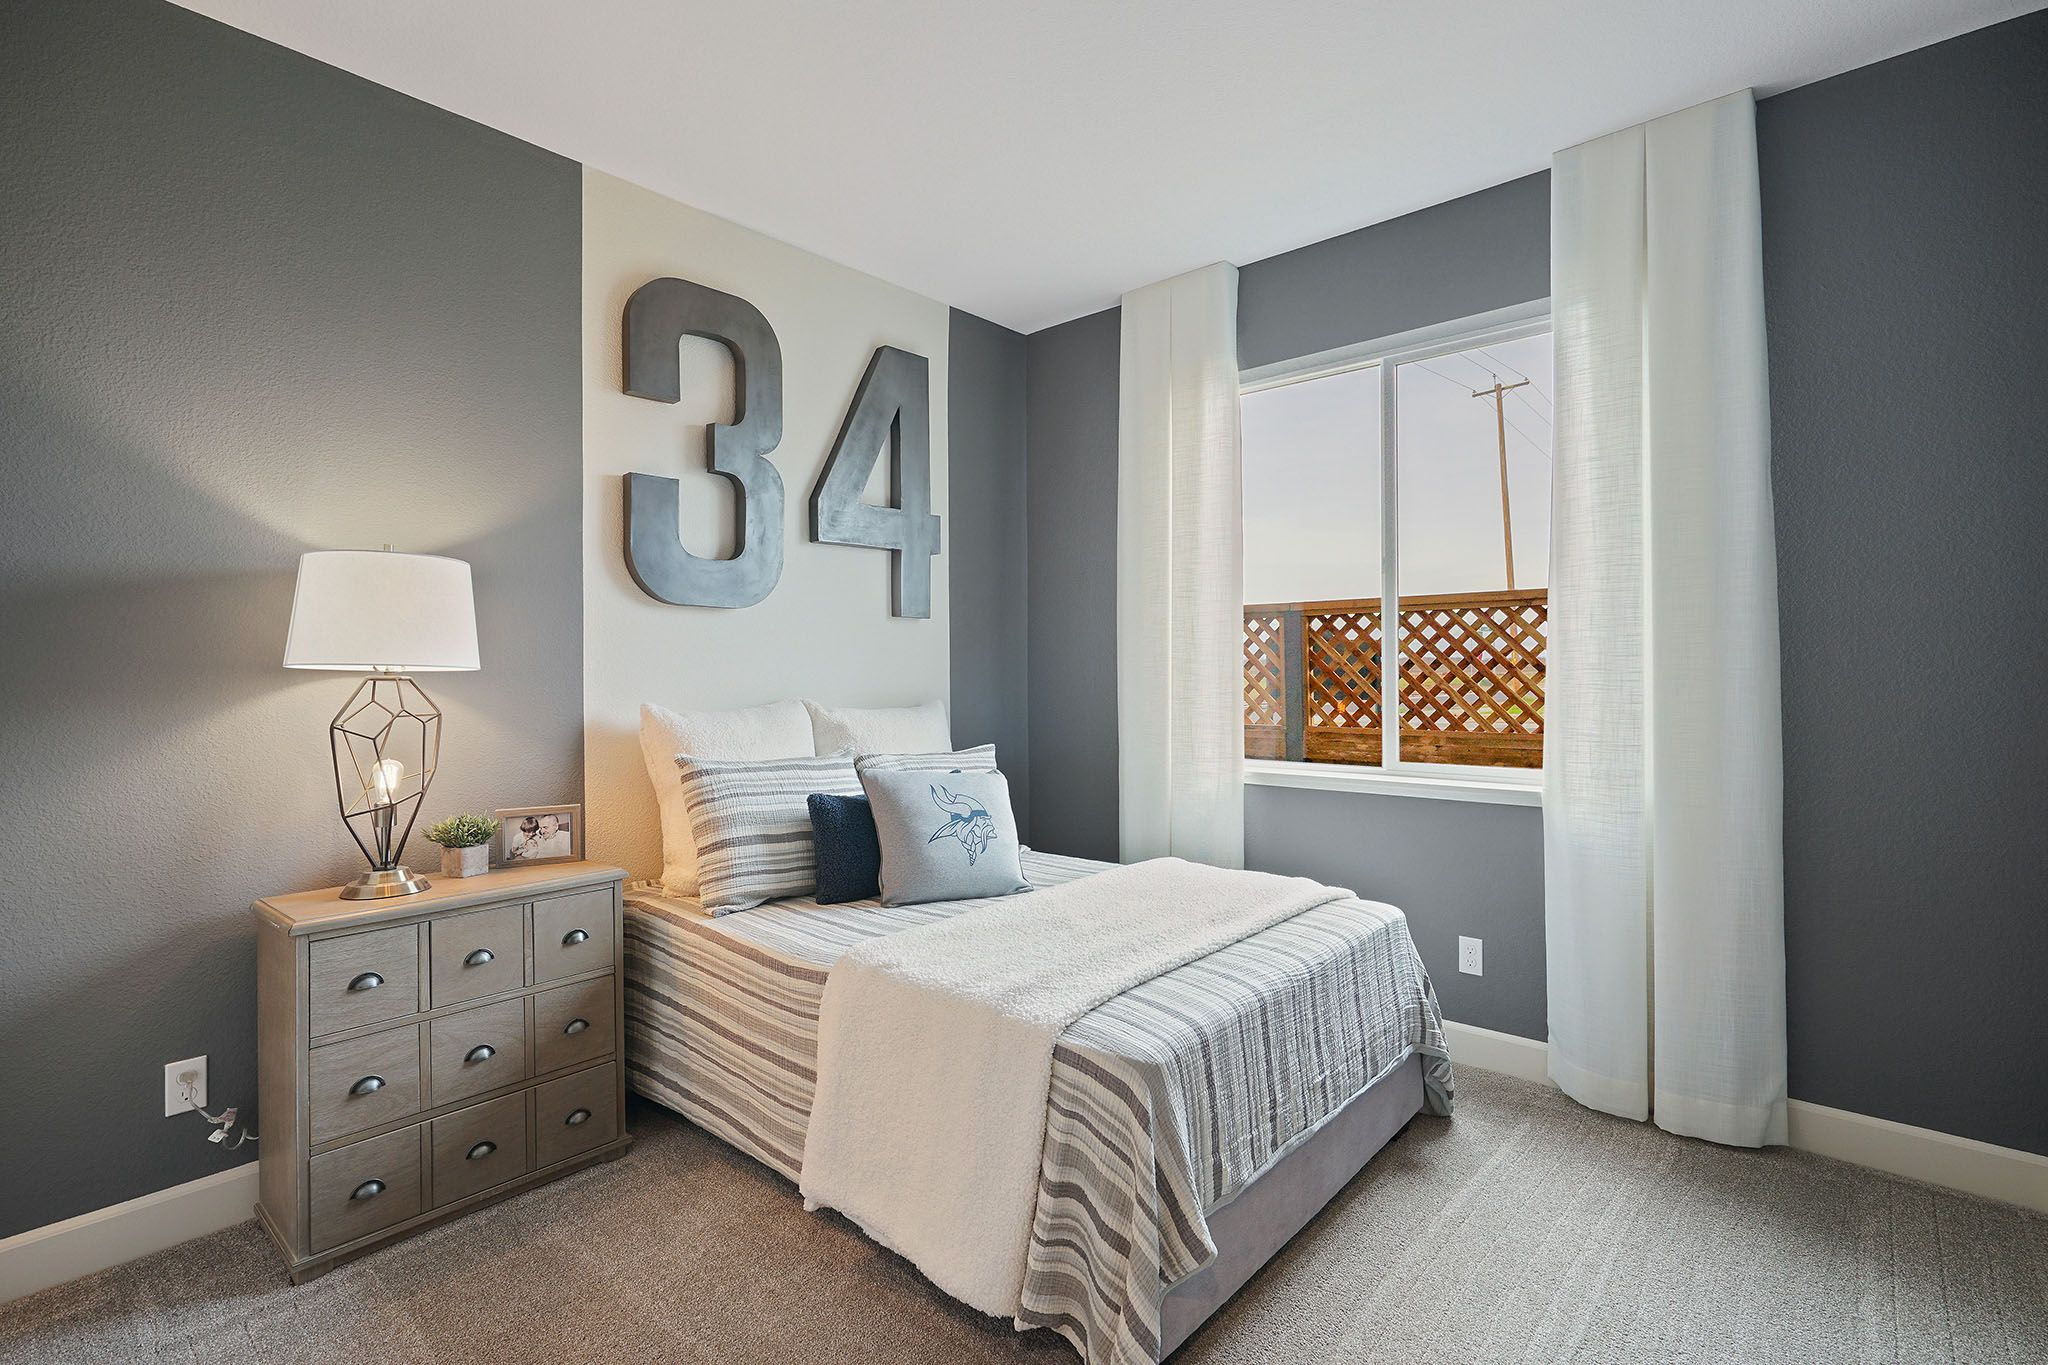 Bedroom featured in the Parker By Discovery Homes in Chico, CA